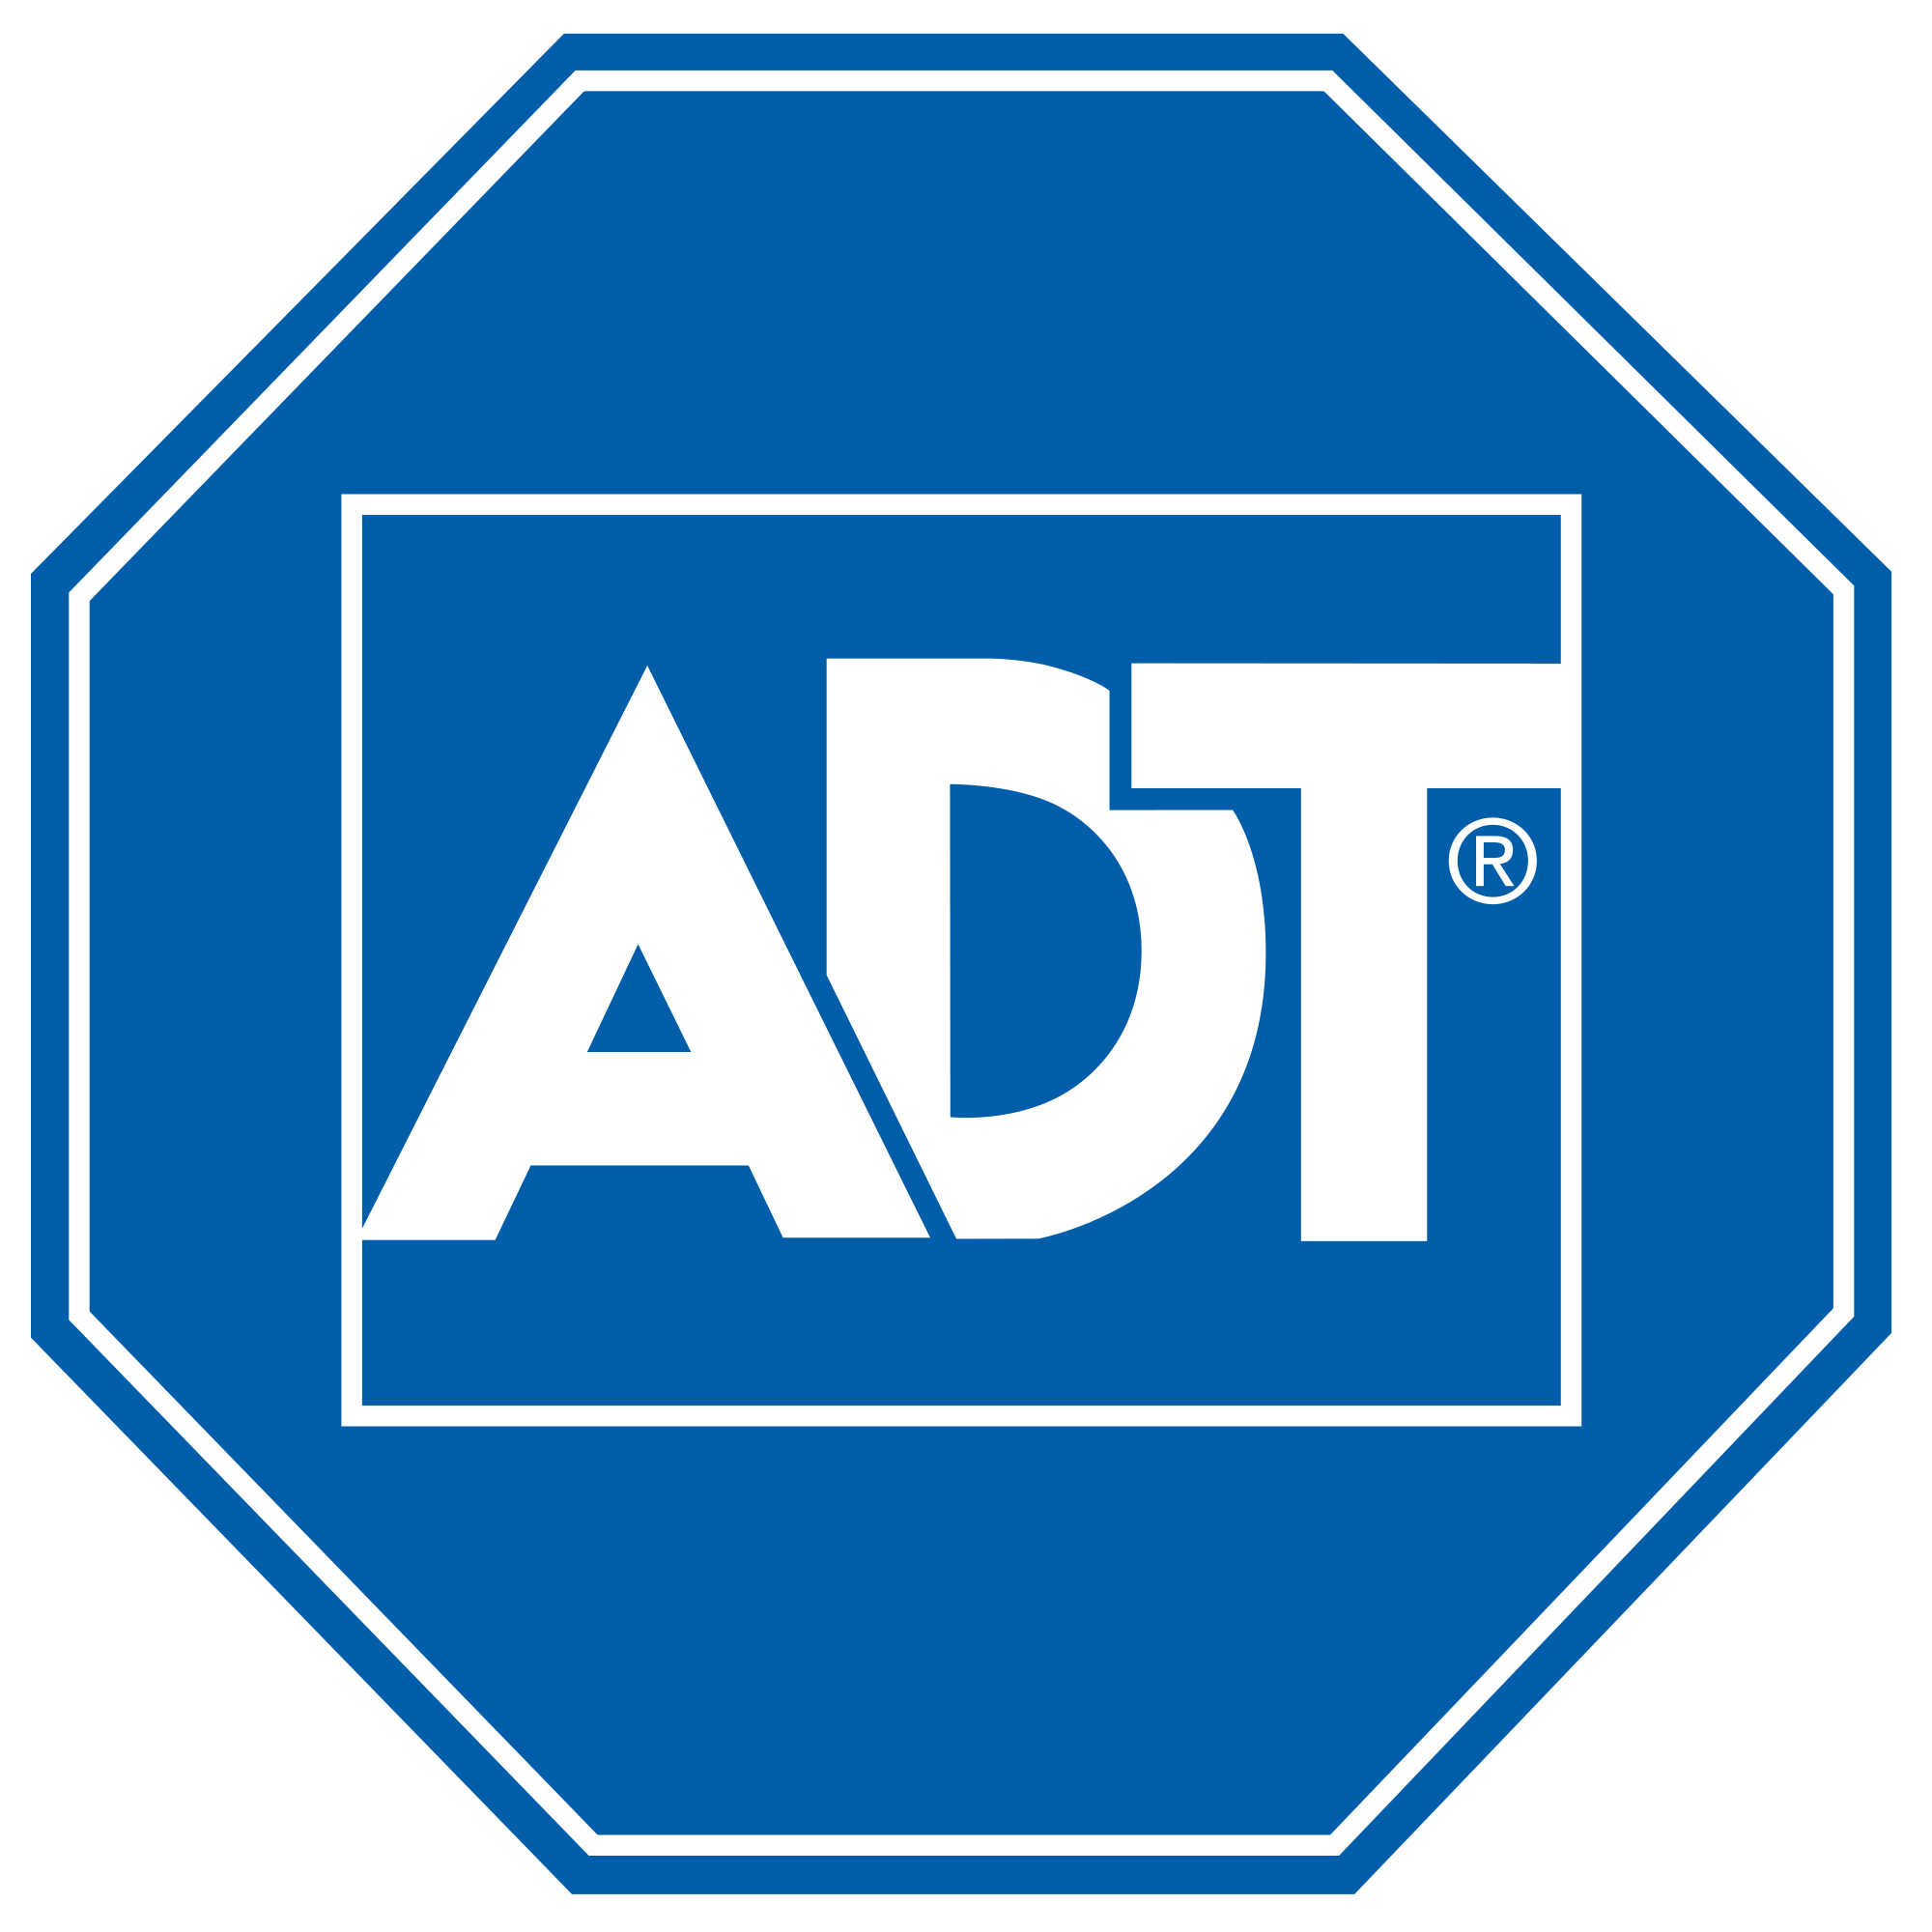 ADT_Security_Services_Logo.png